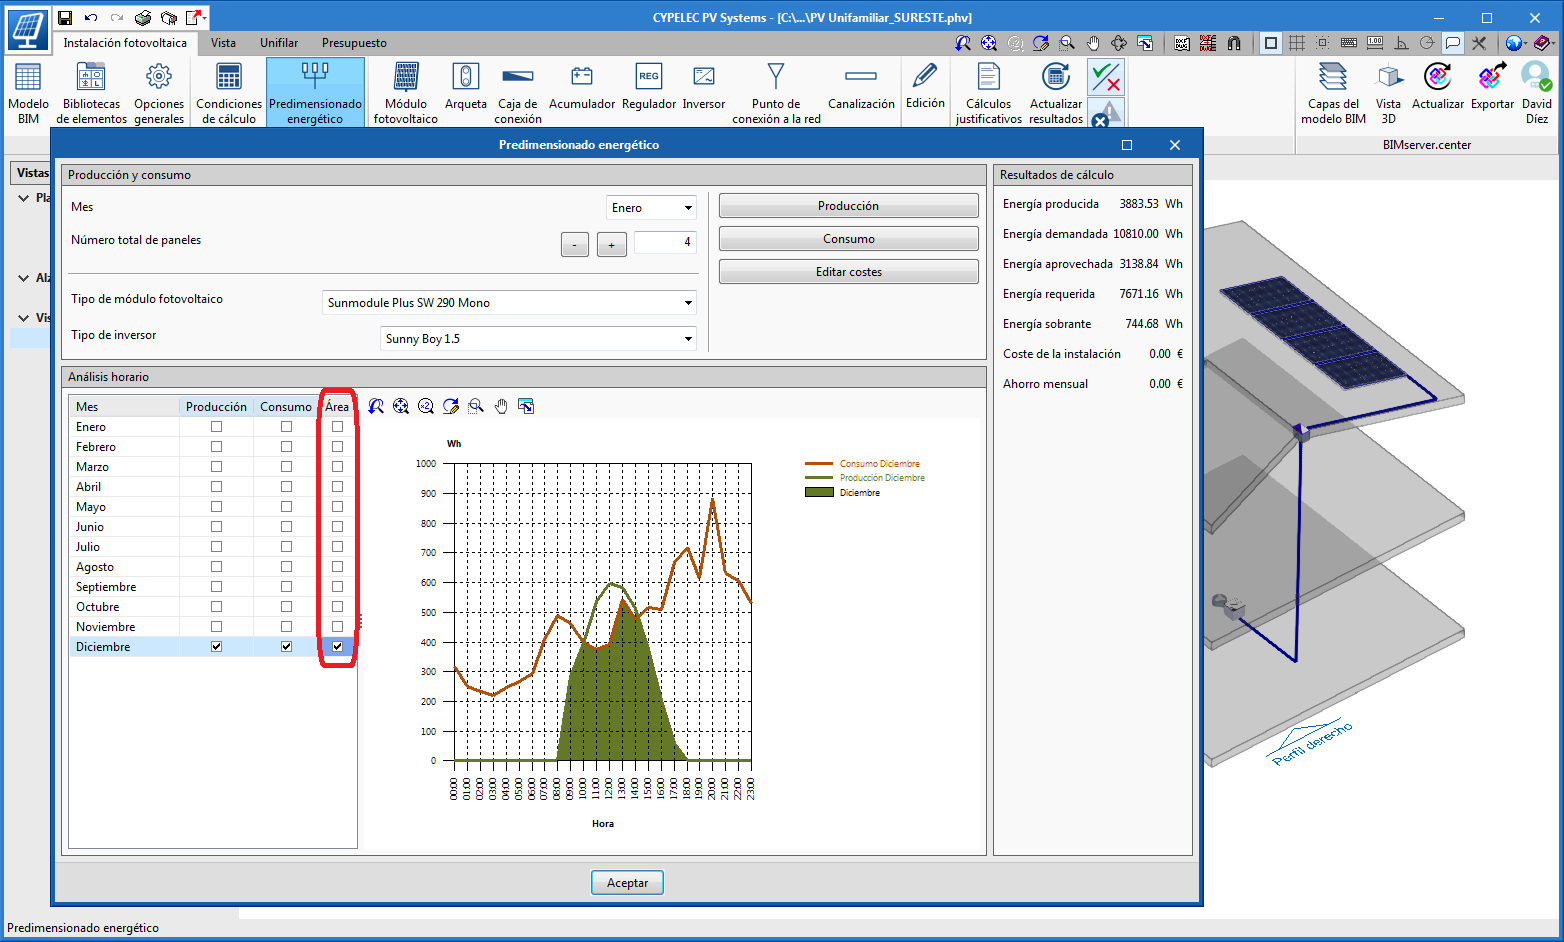 CYPELEC PV Systems. View the intersection between consumption and generation graphs